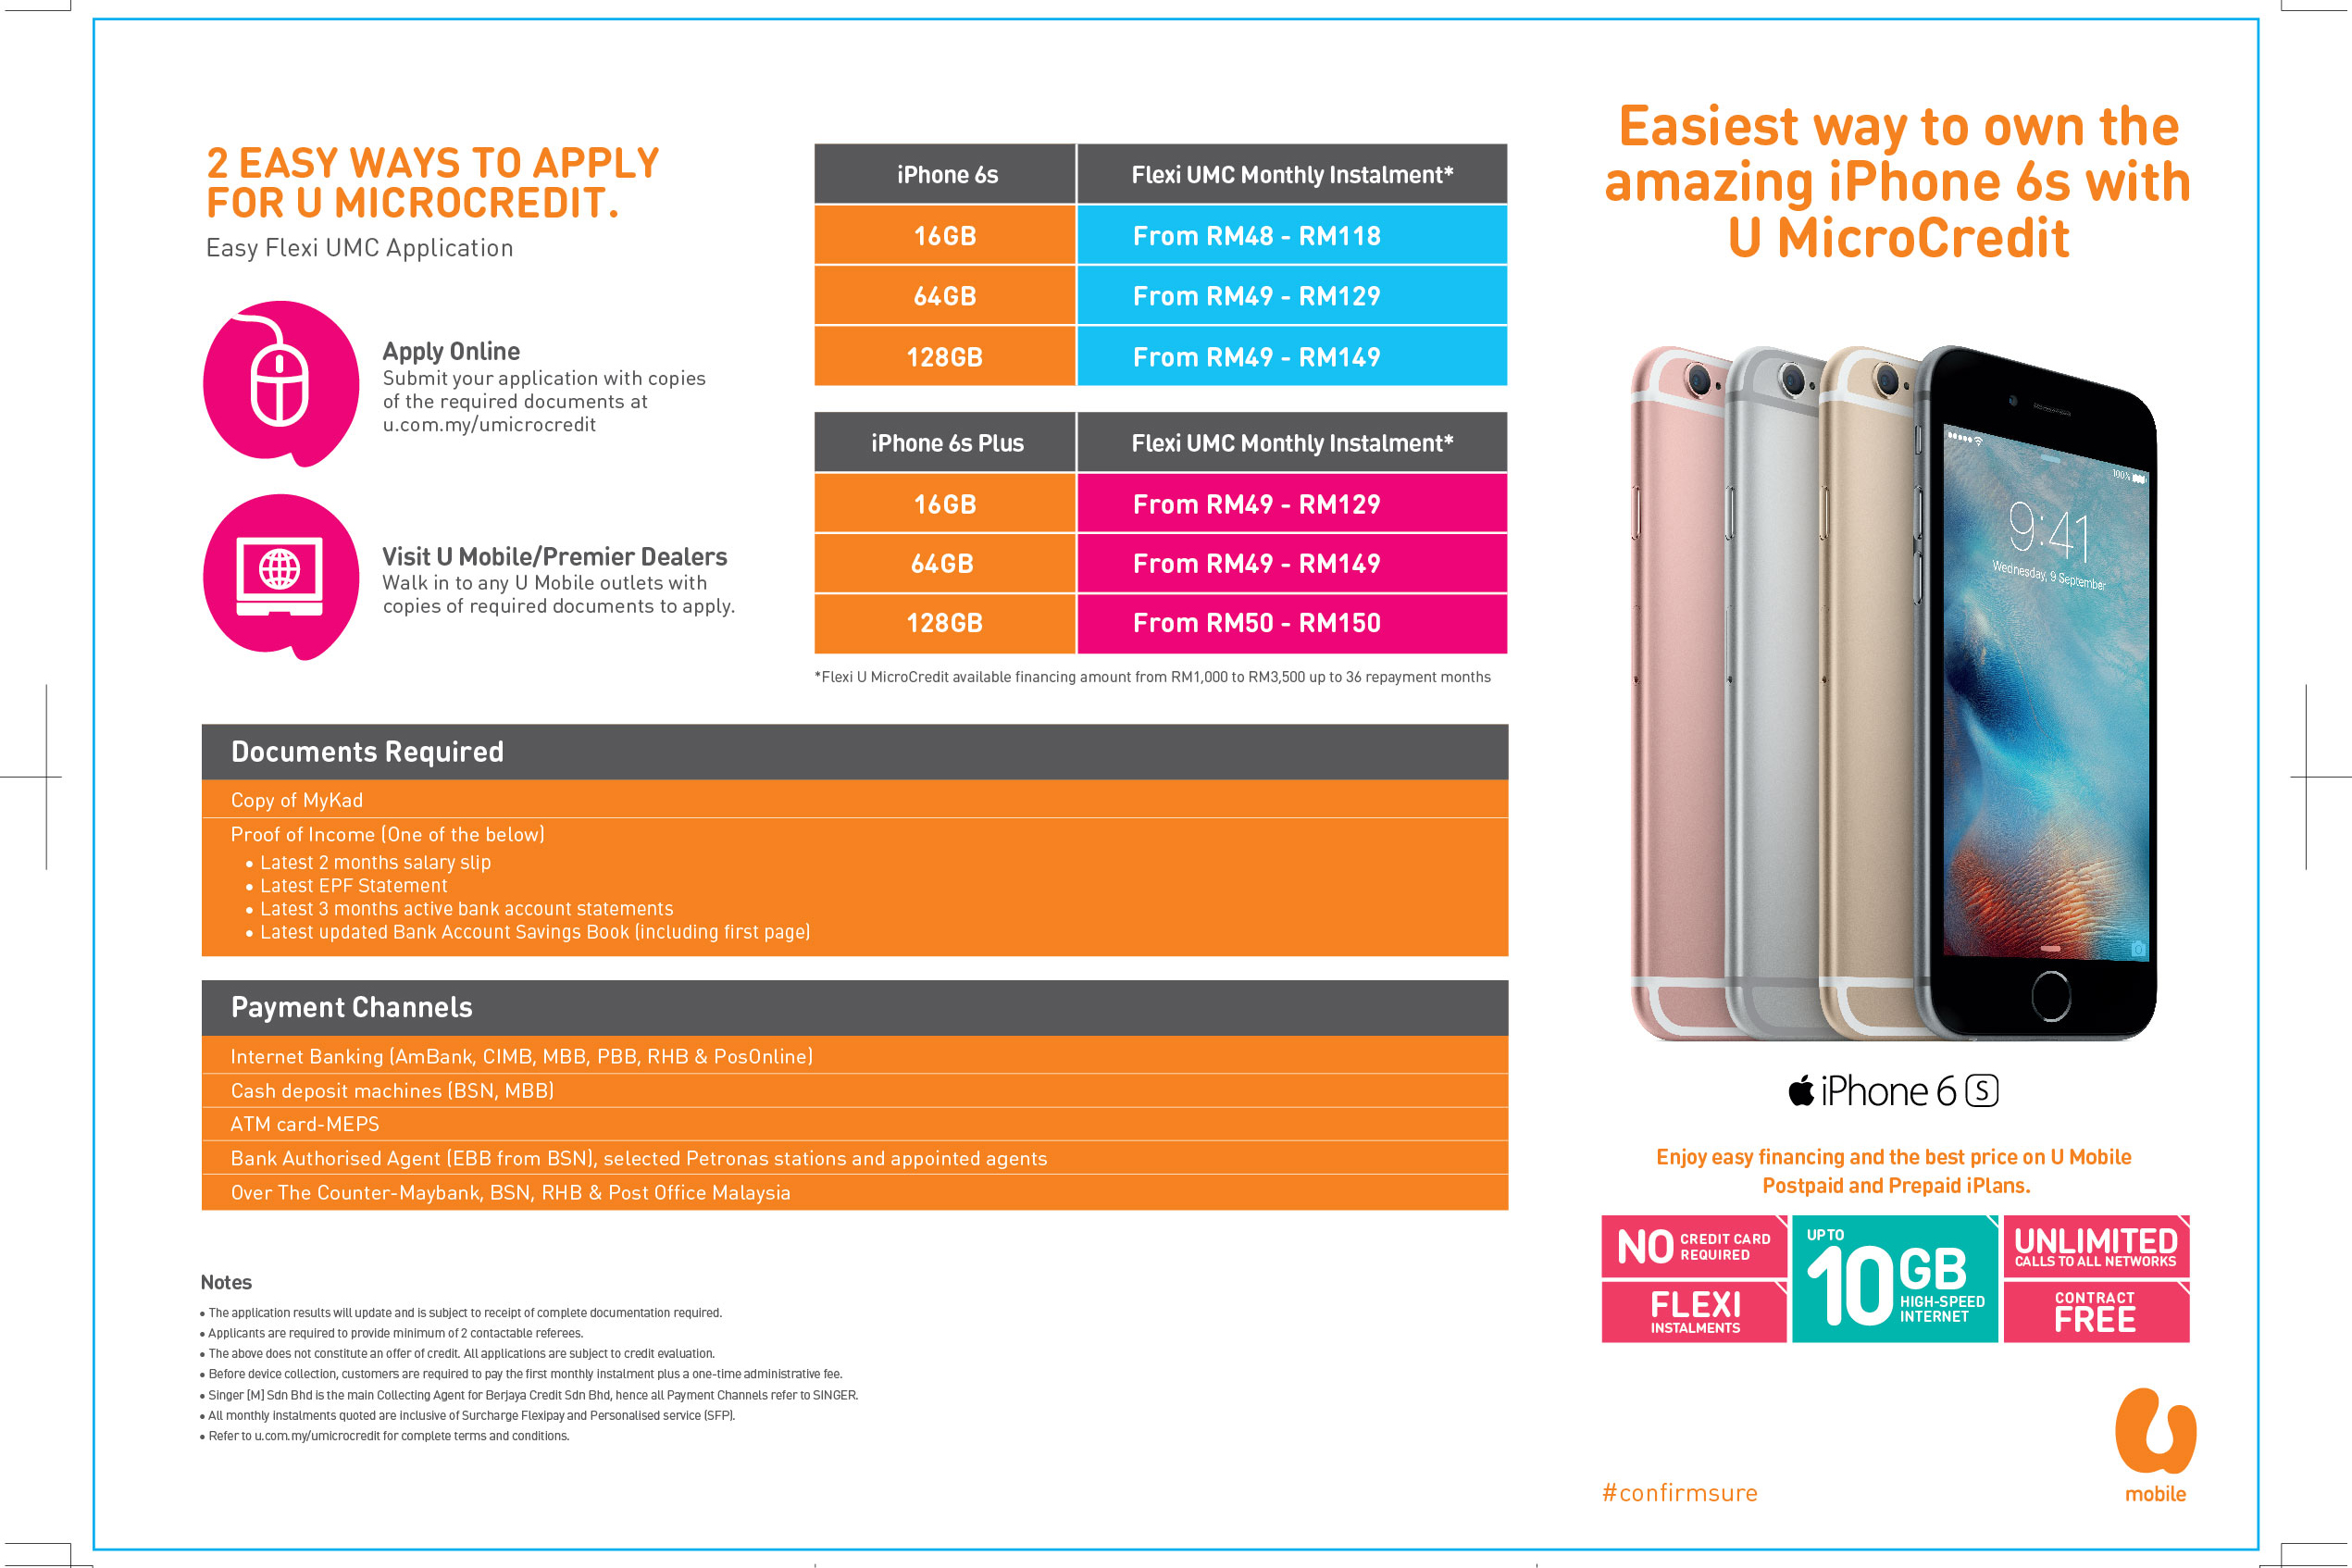 U Mobile: Mystery gifts and free phones awaits iPhone 6s and 6s